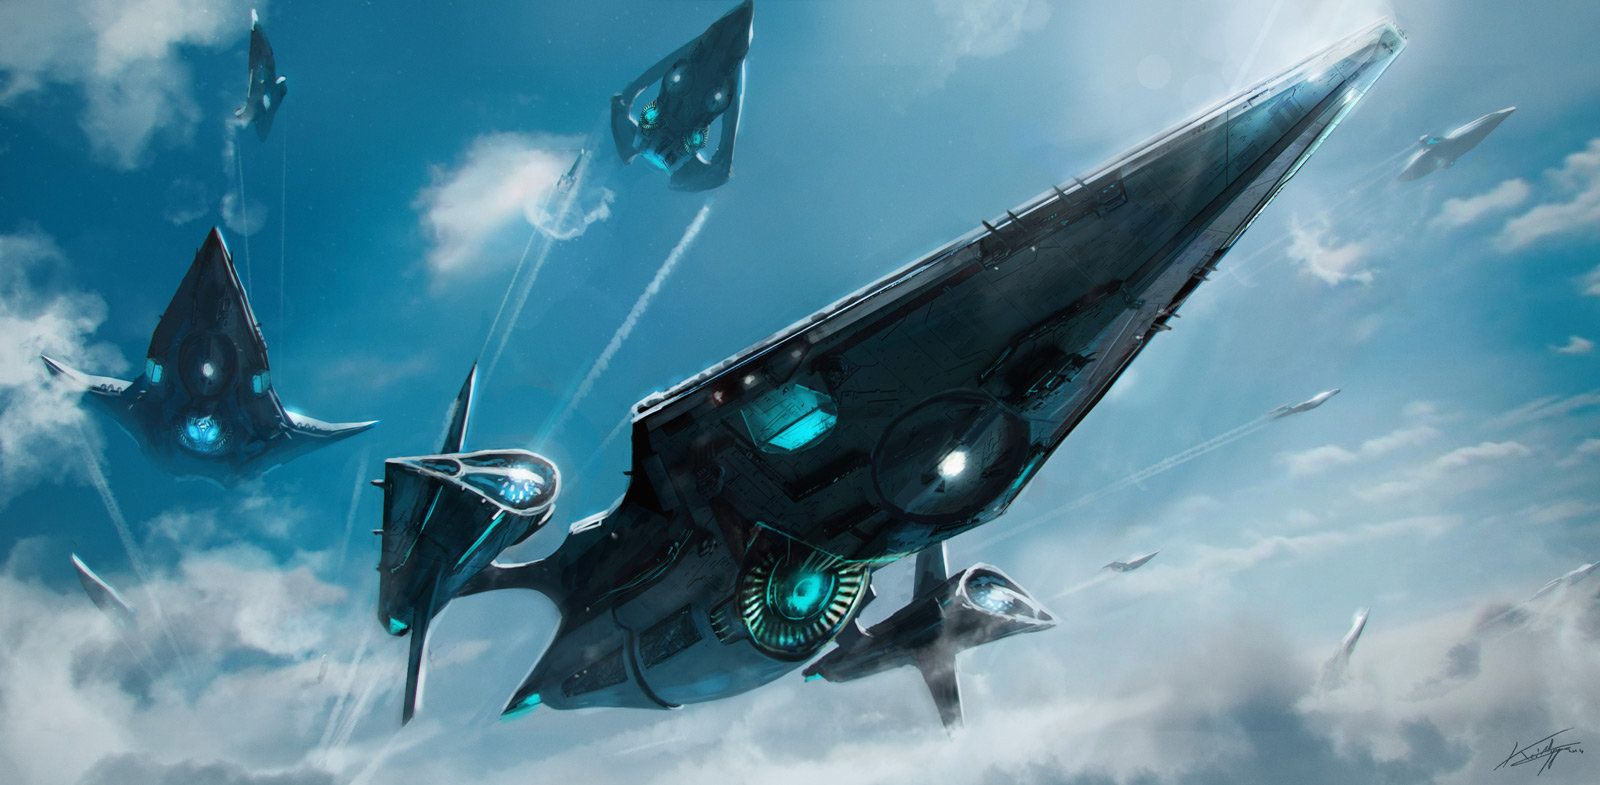 concept ships: Spaceships by Thibault Girard